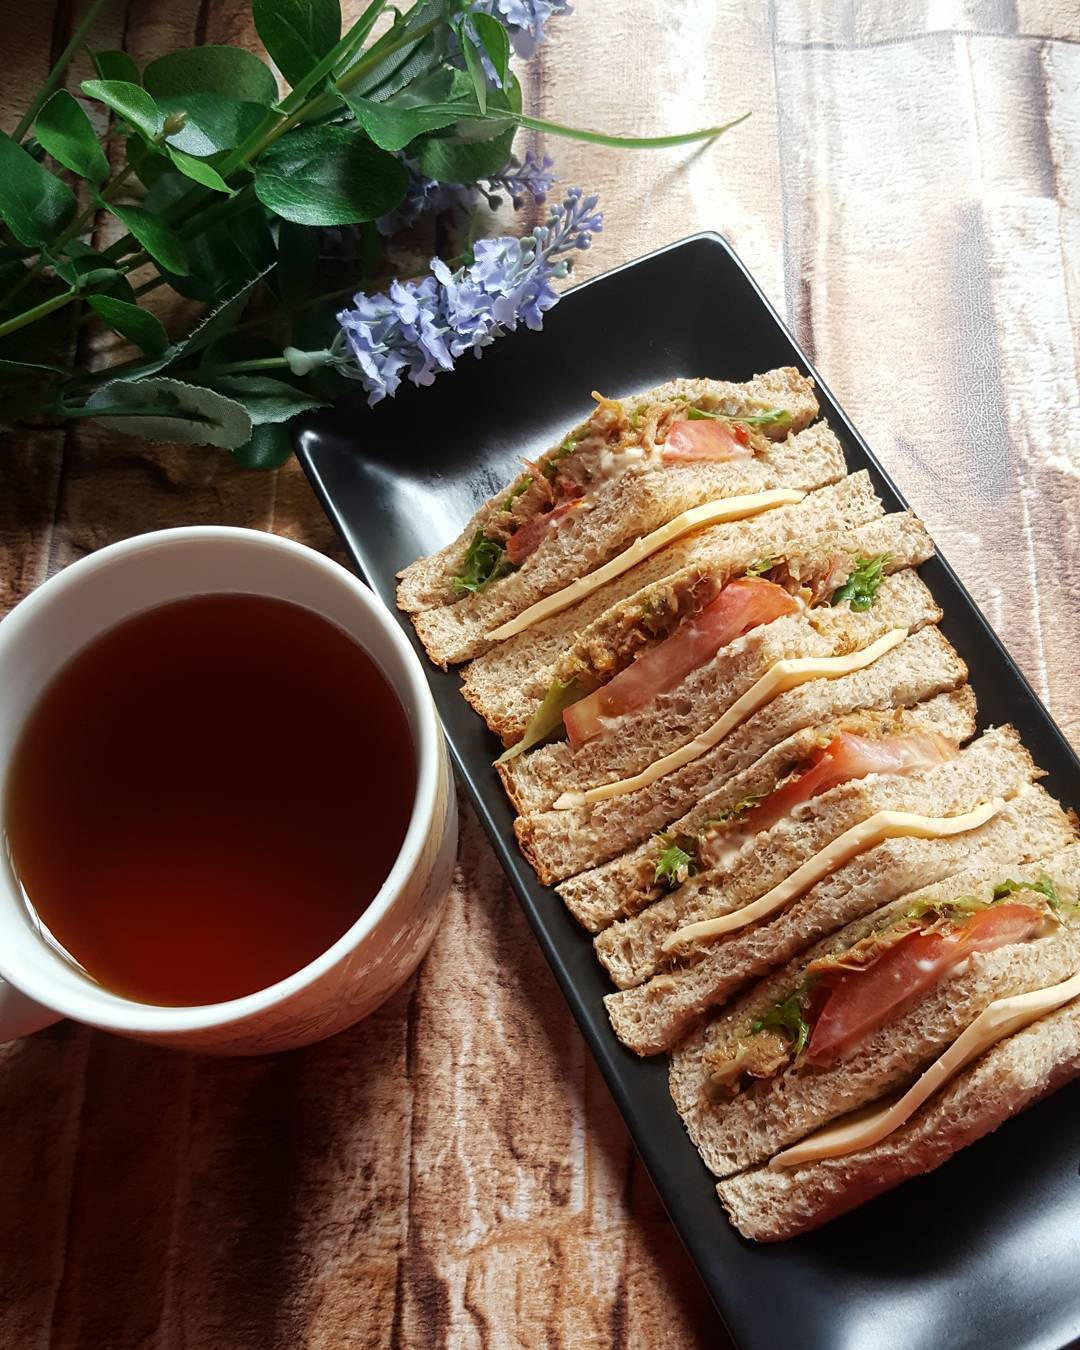 WHOLEMEAL TUNA SANDWICH